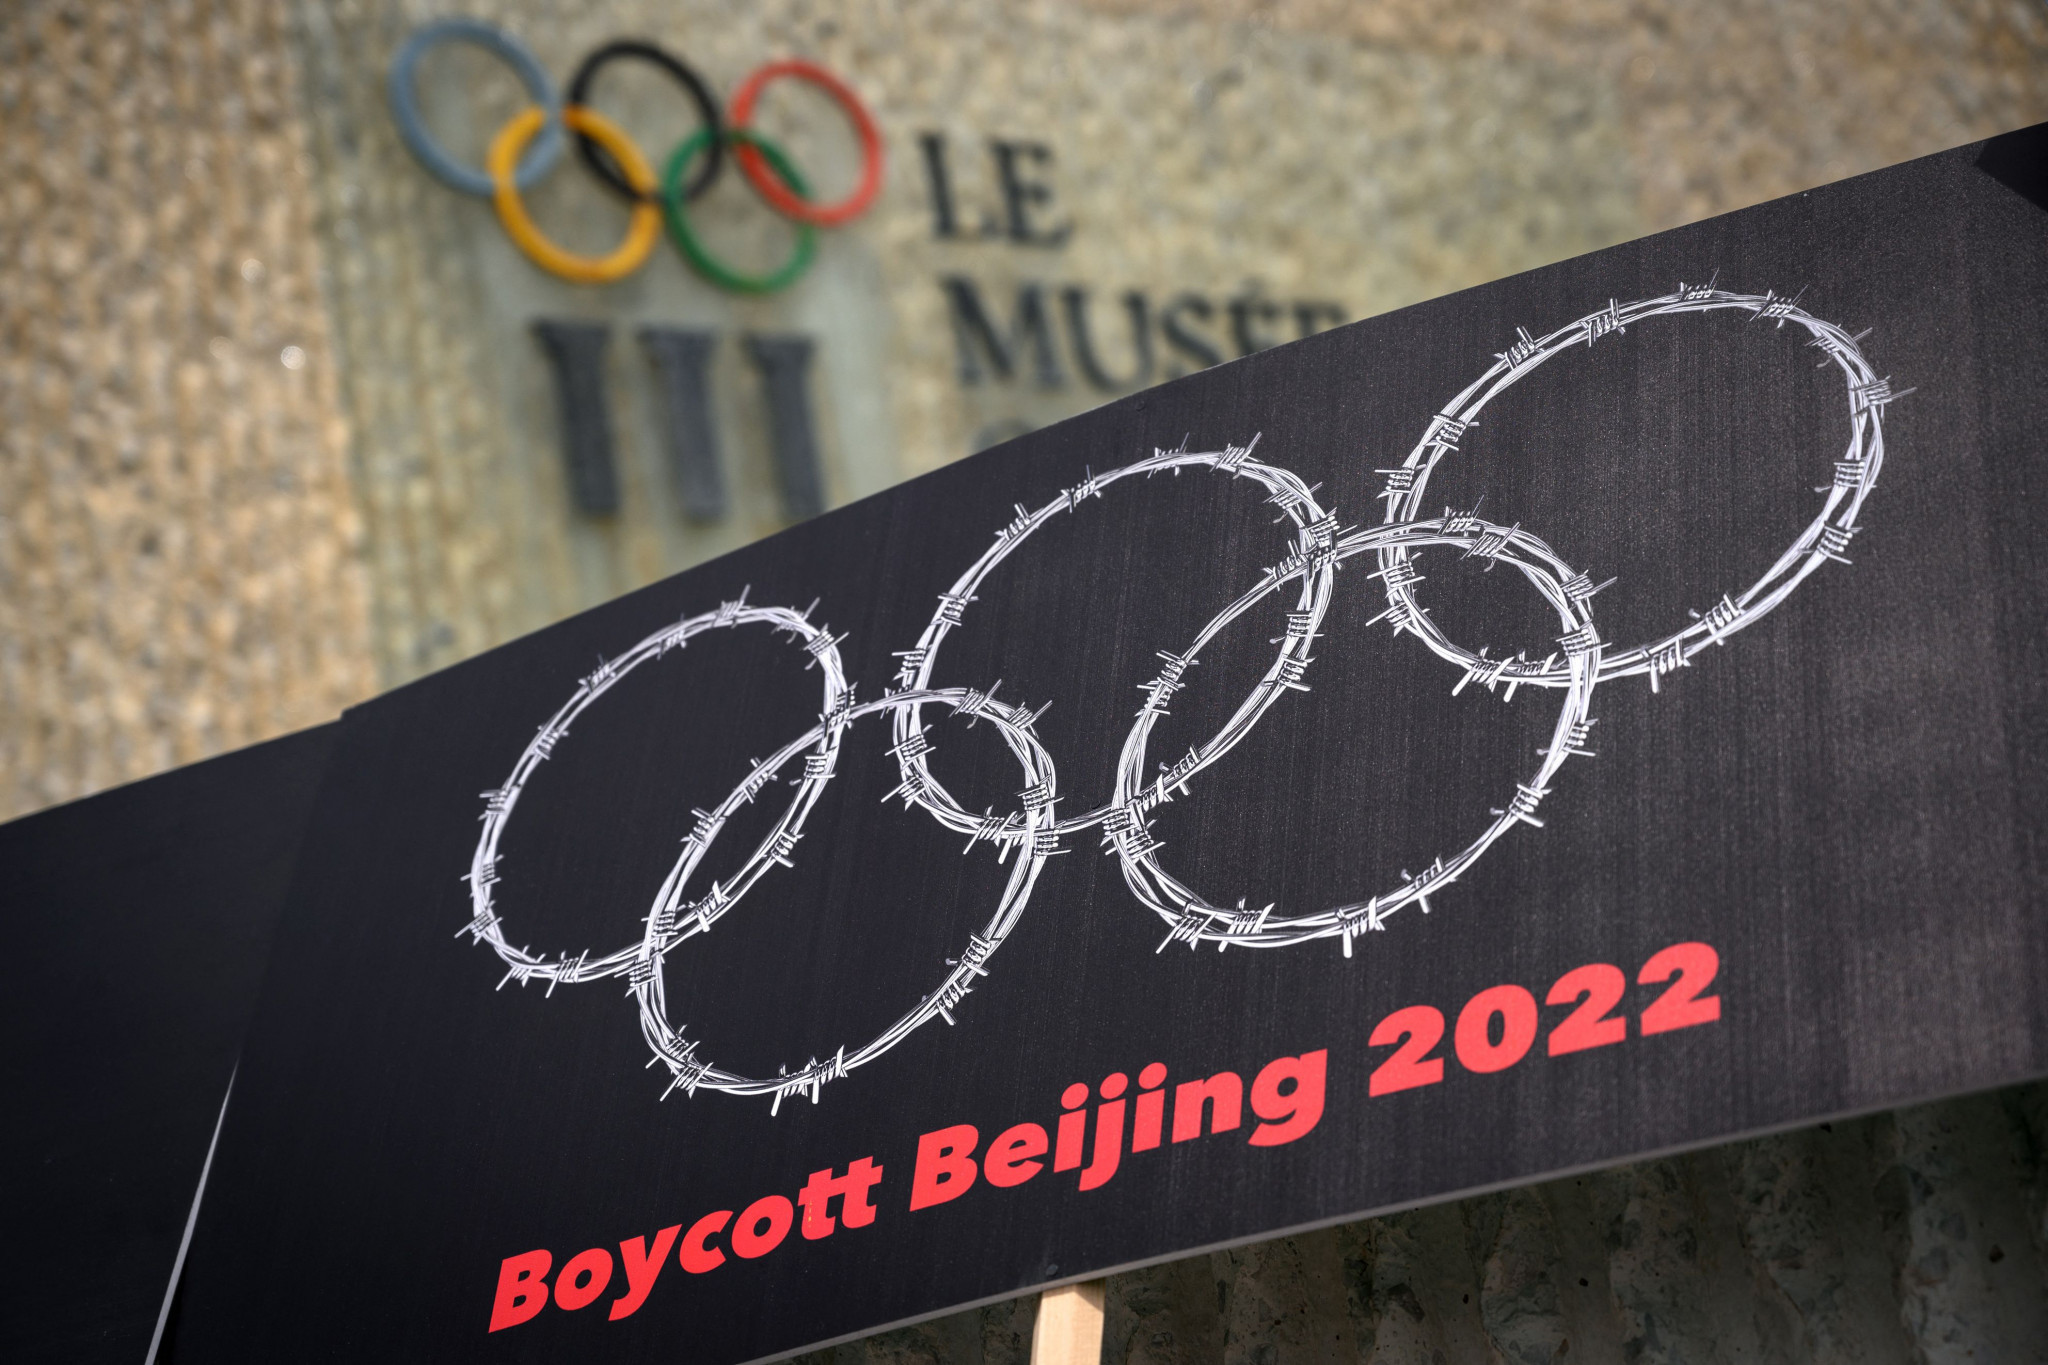 The IOC has faced pressure to address human rights concerns regarding Beijing 2022 ©Getty Images